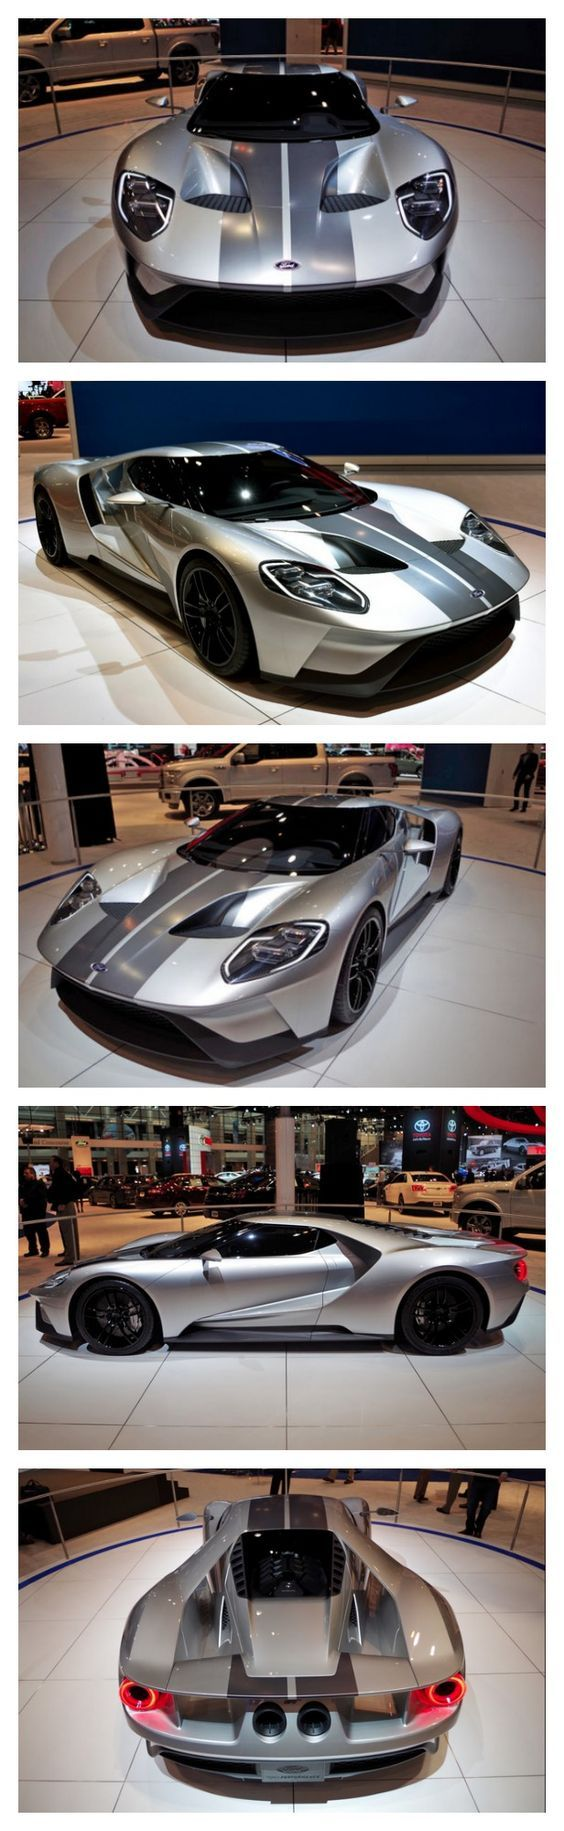 The Ford Gt Just Rocked Up In Chicago With A New Silver Paint Job With Images Ford Gt Super Cars Car Ford